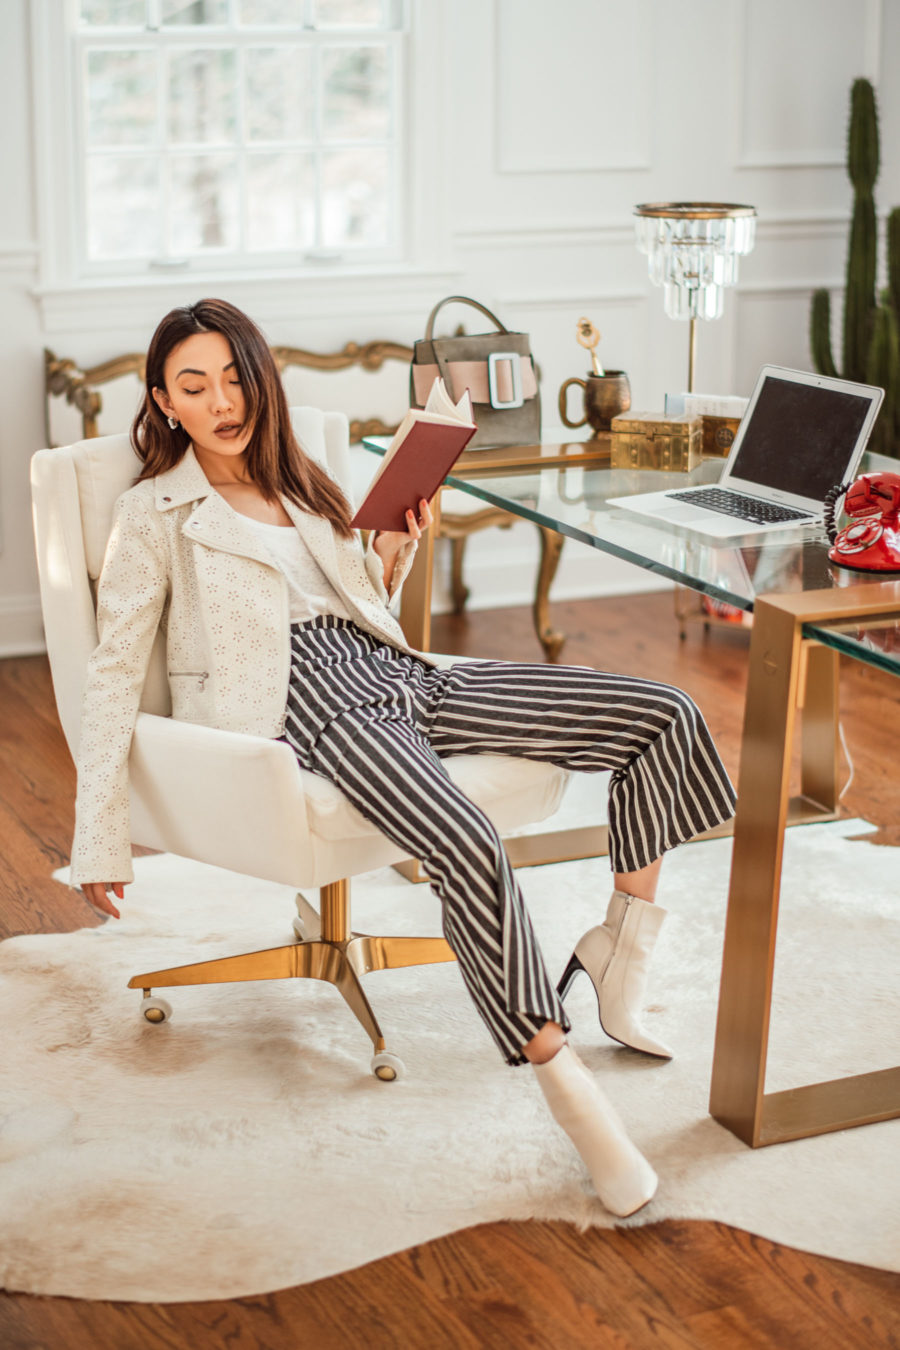 trouser styles for women featuring printed trousers // Notjessfashion.com